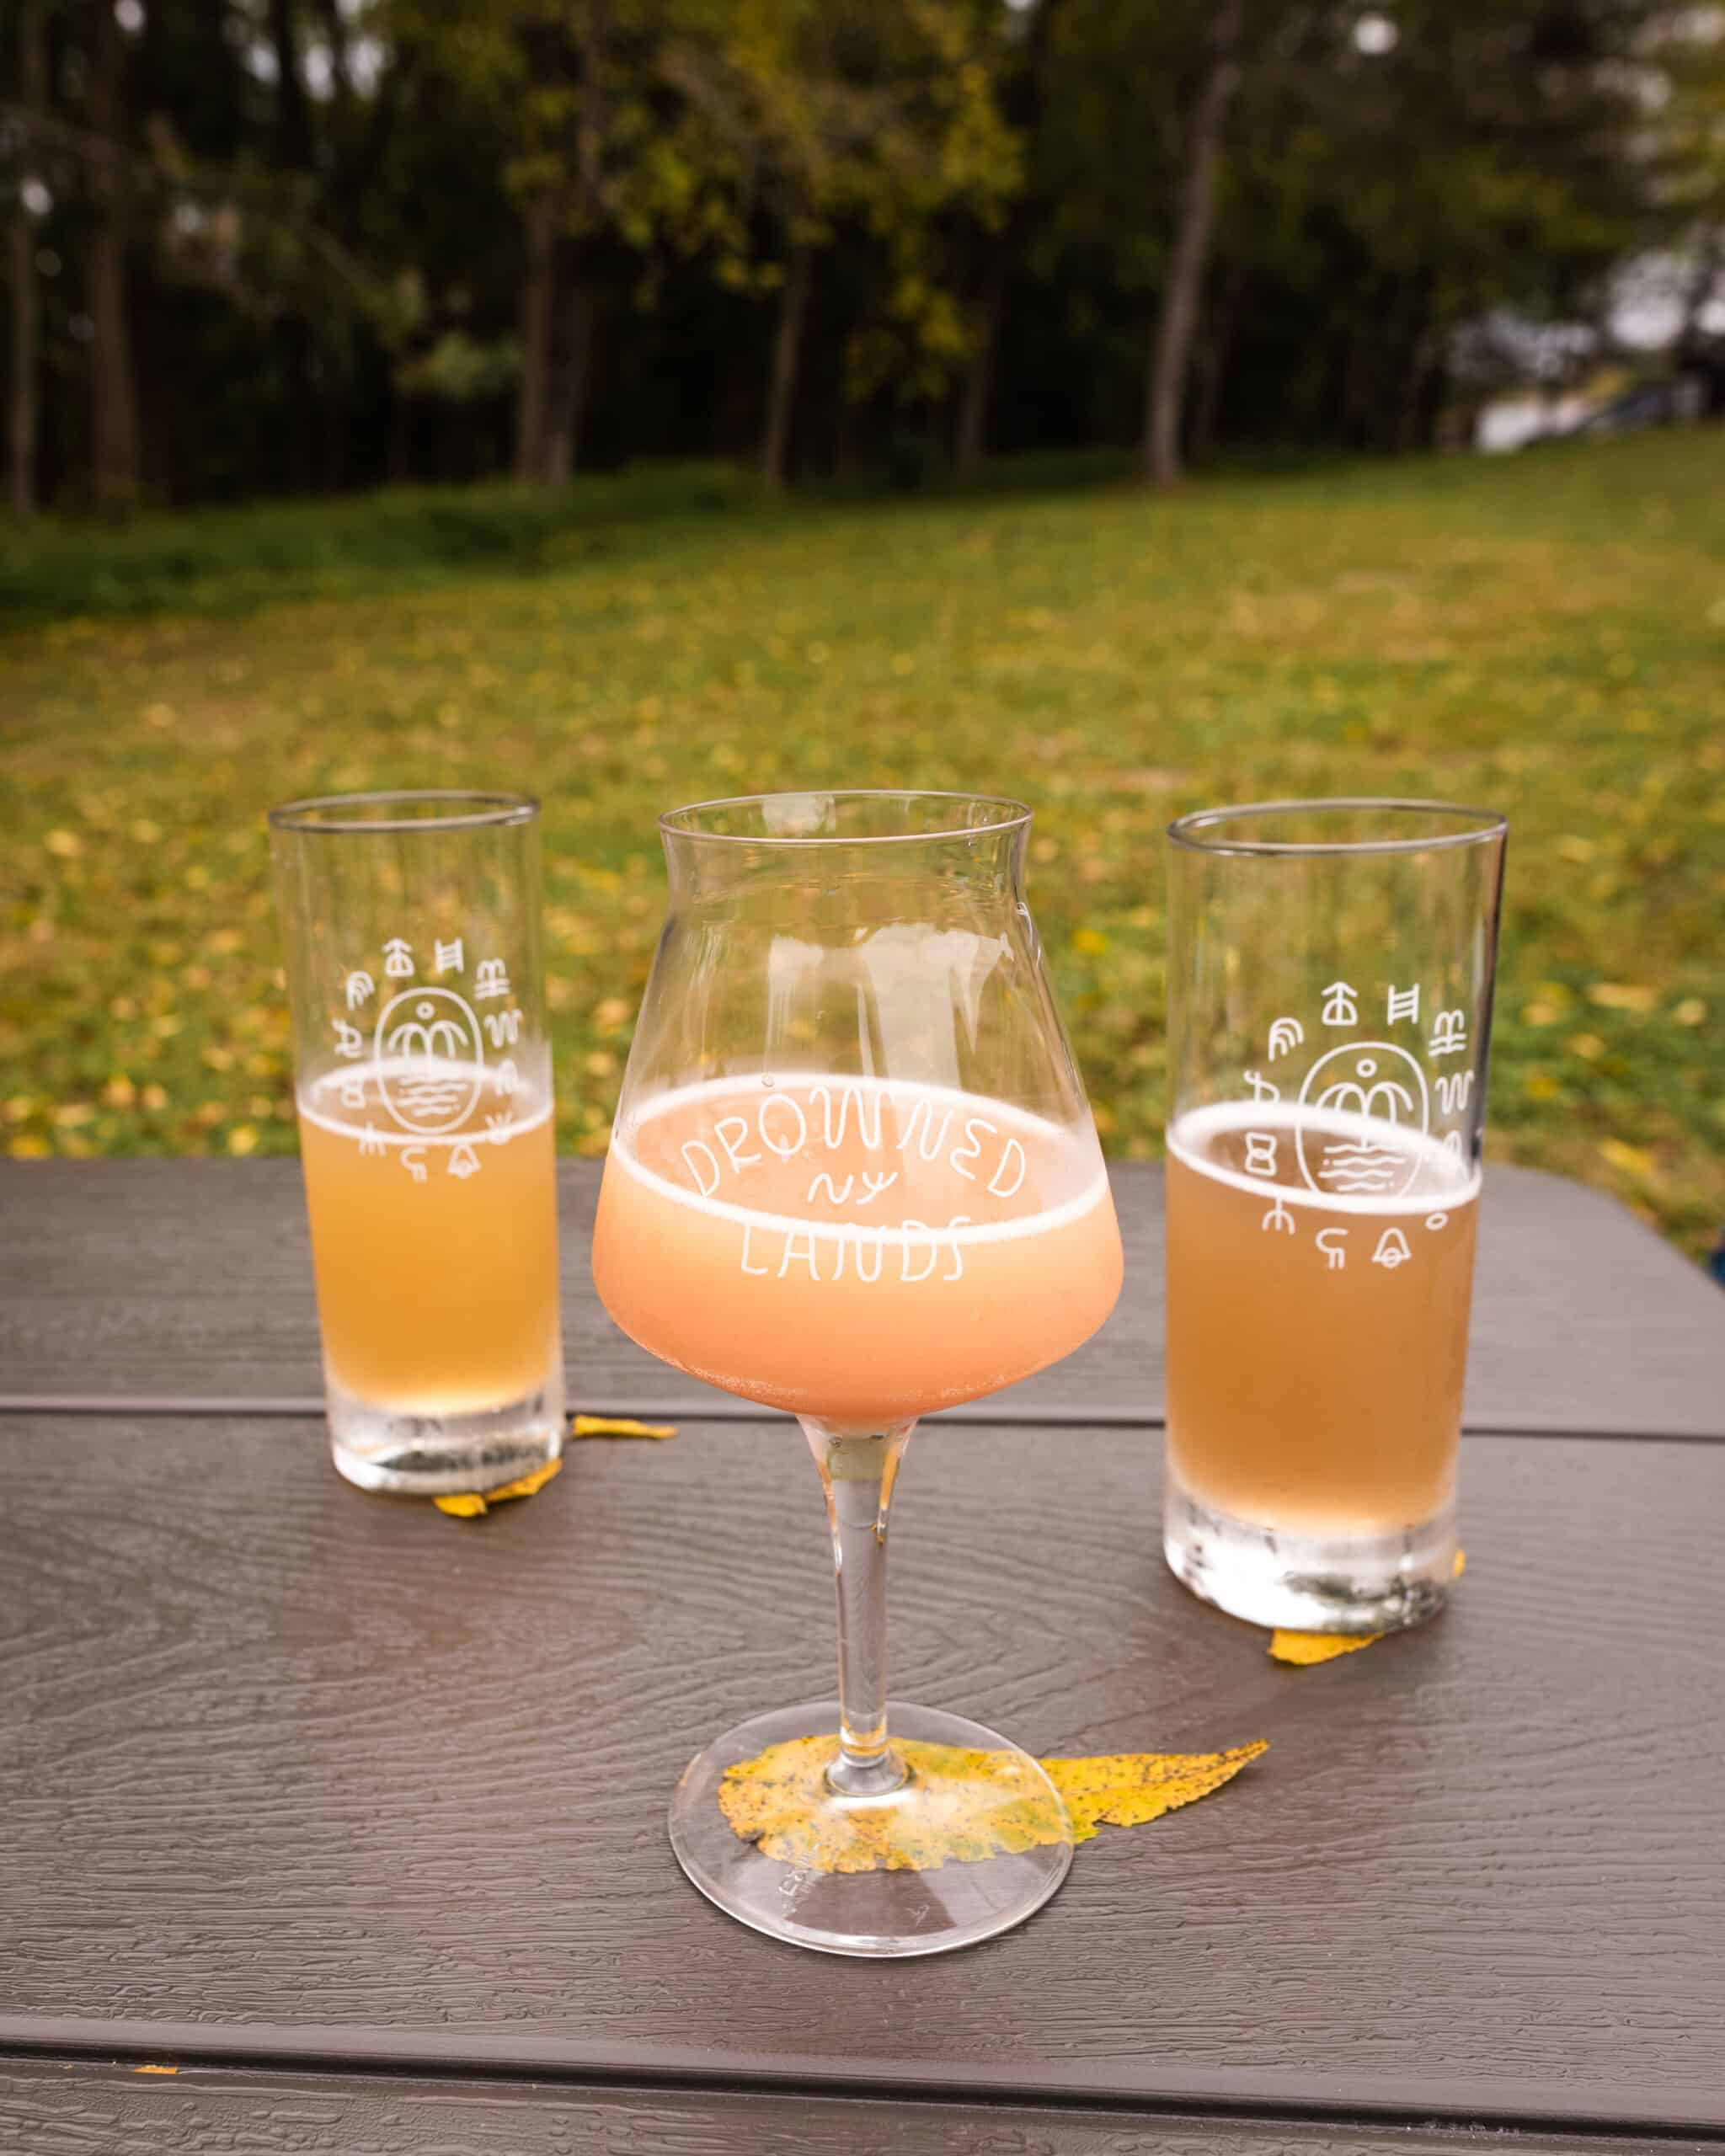 Warwick, NY Wineries, Cideries and Distilleries